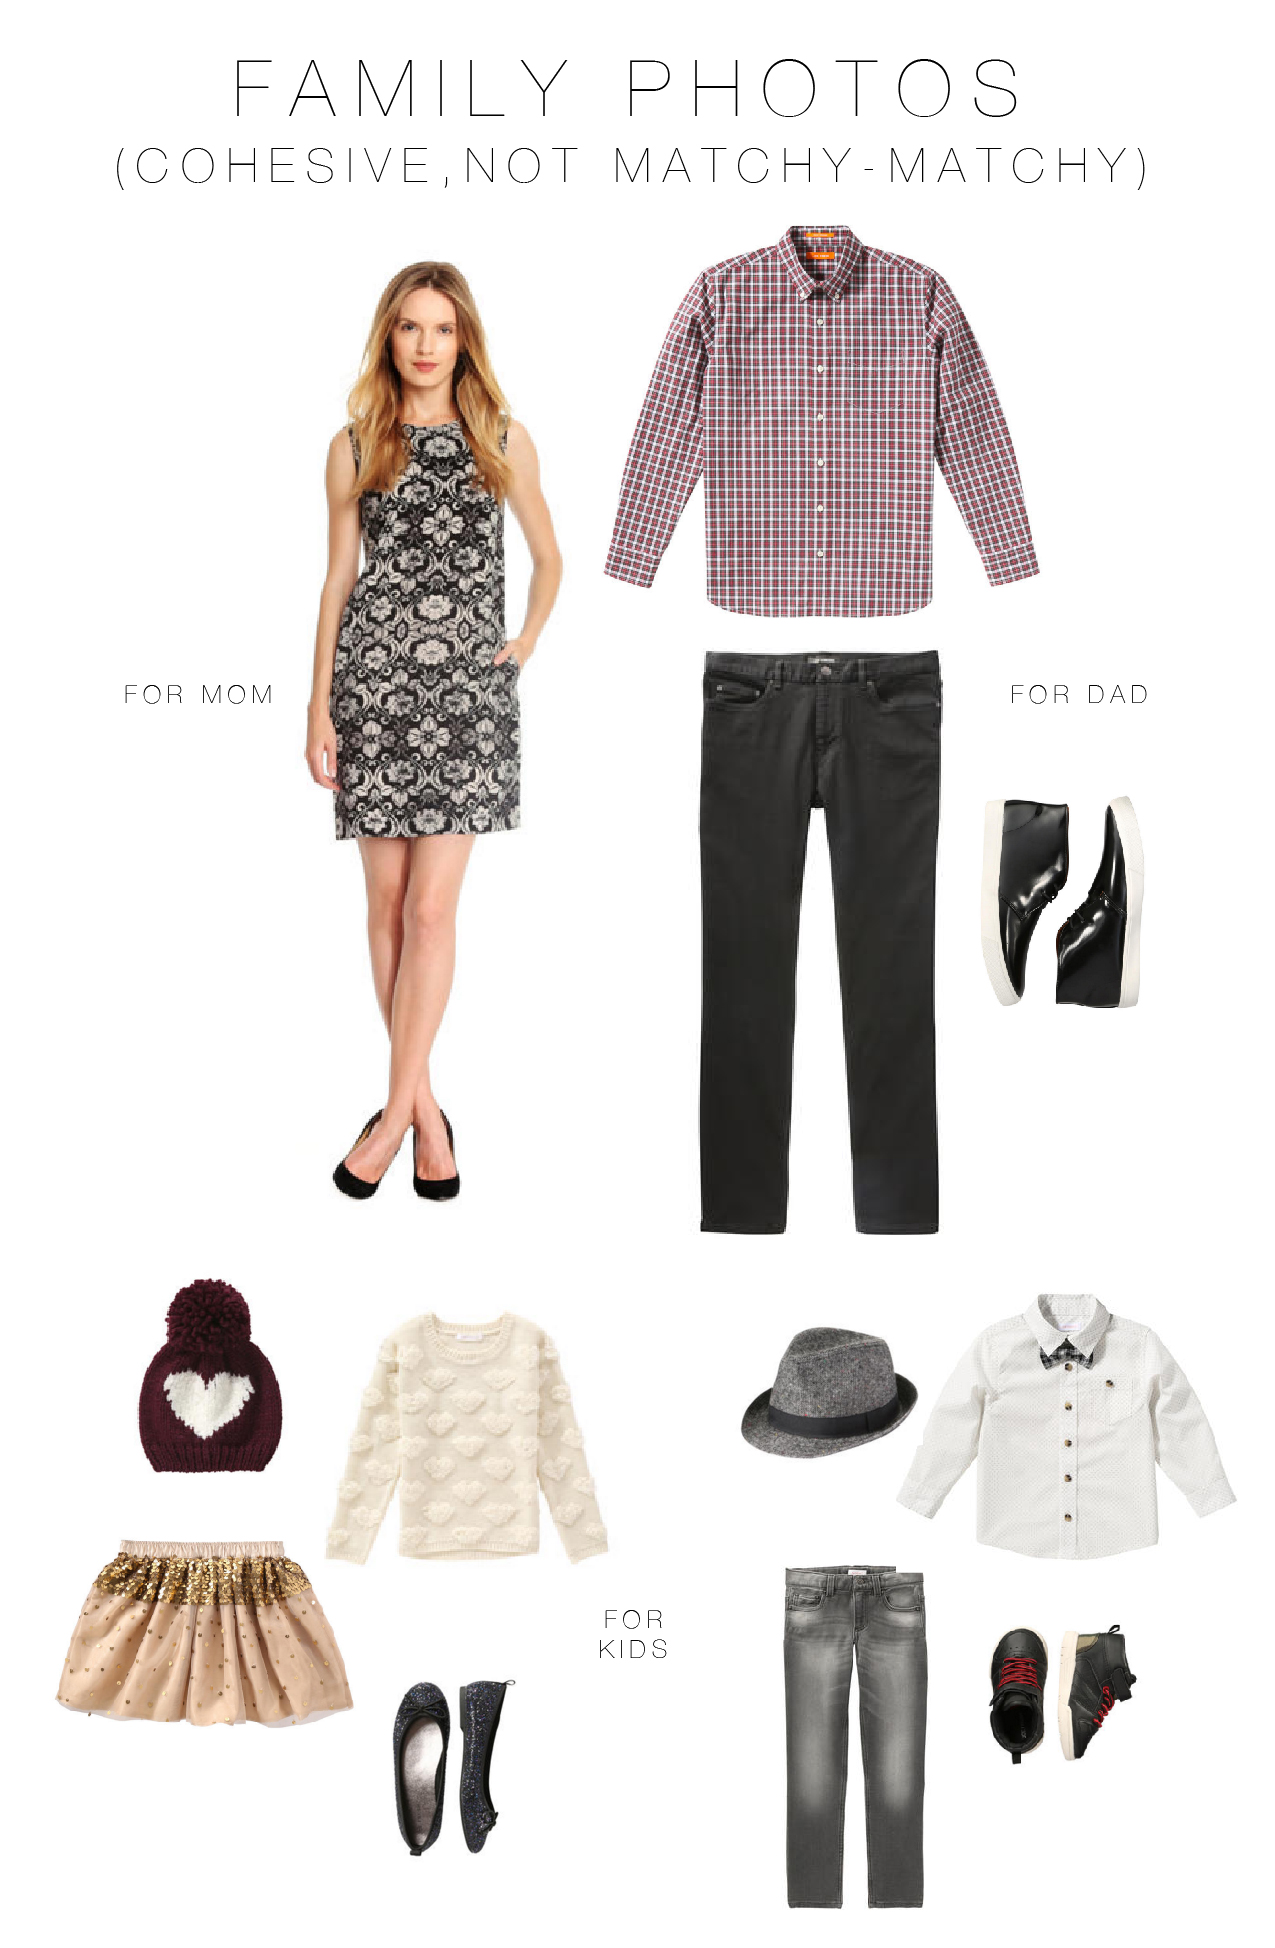 What To Wear For Family Photos 8 Tips Look Cohesive Not Matchy